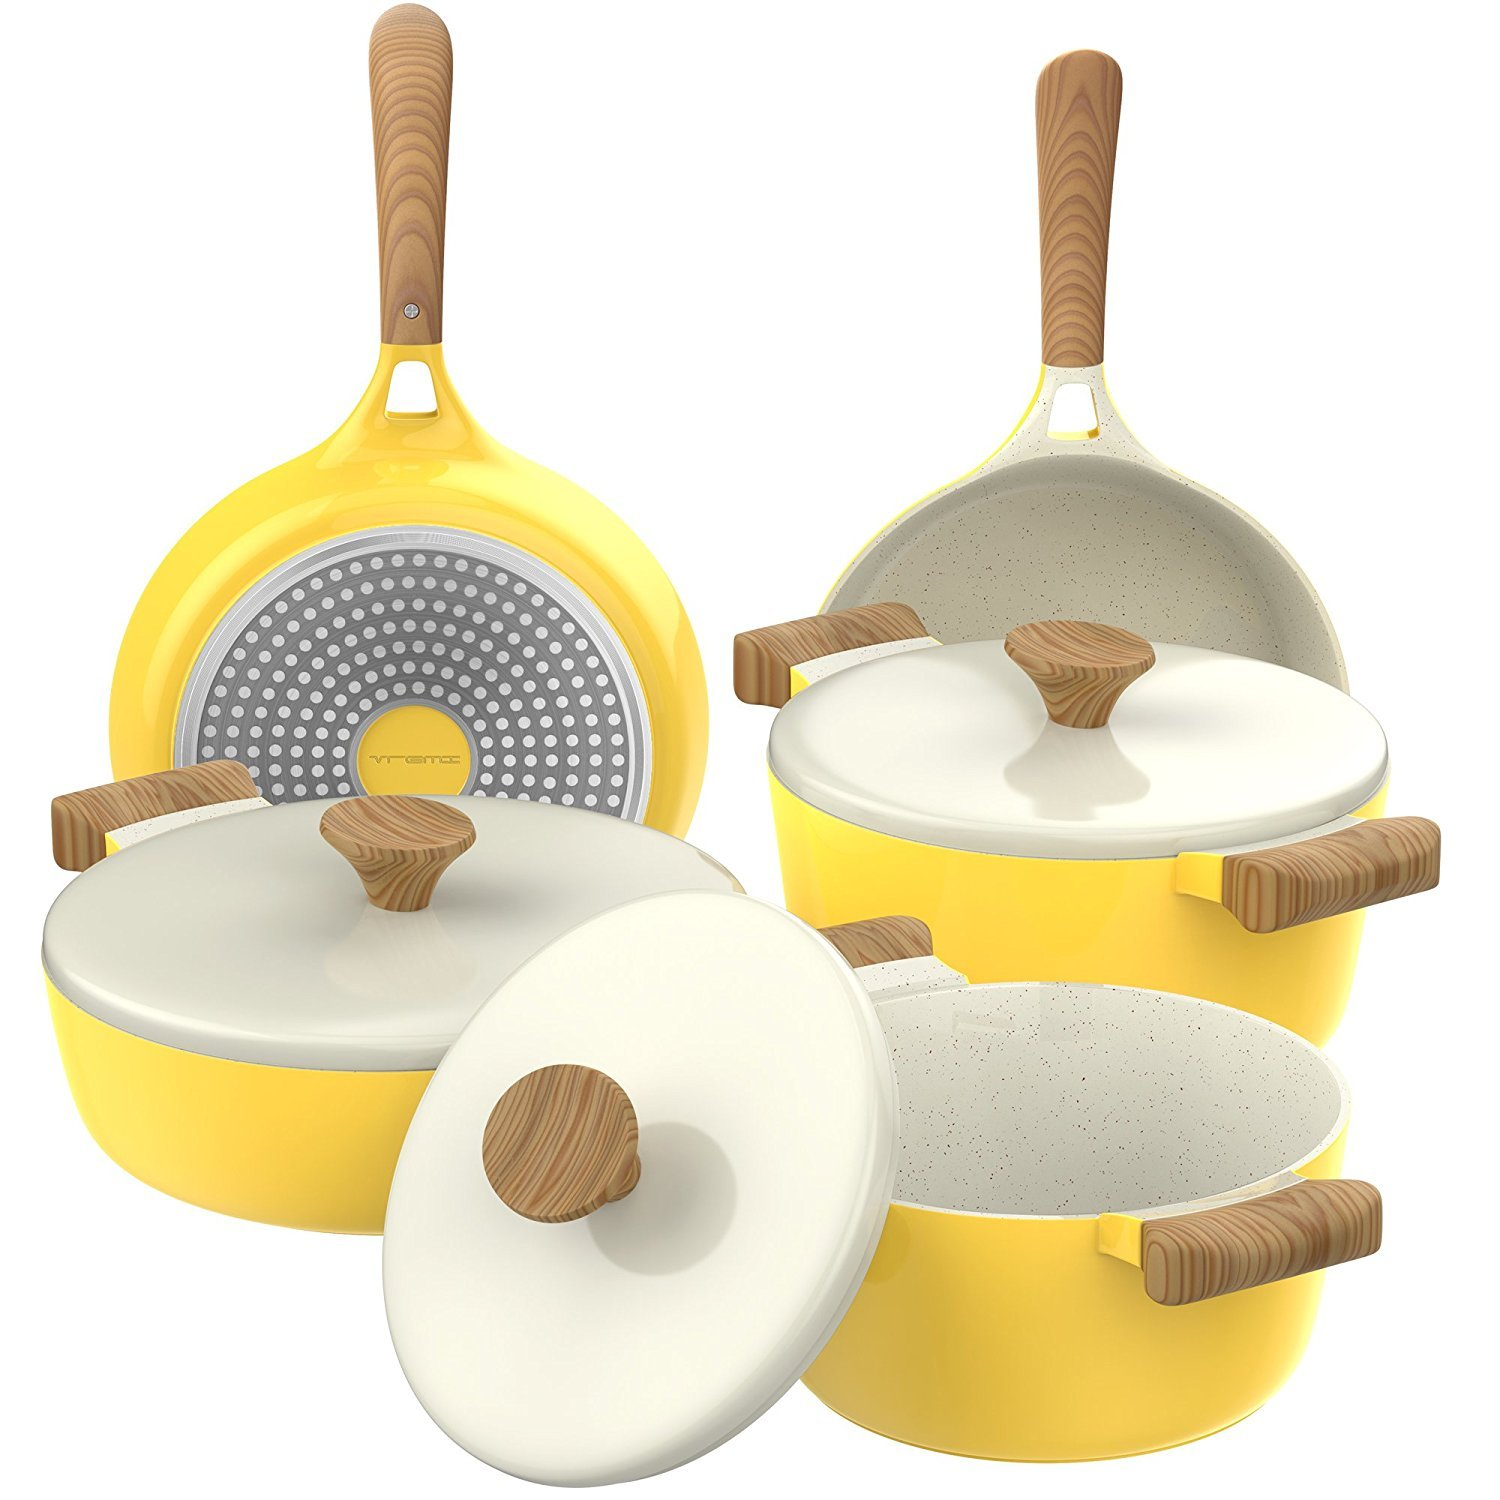 Vremi 8 Piece Ceramic Cookware Set セラミック調理器具セット - Induction Stovetop Compatible Dishwasher Safe Non Stick Pots and Frying Pans with Lids (並行輸入品) One Size Yellow and White B07CL34WDL